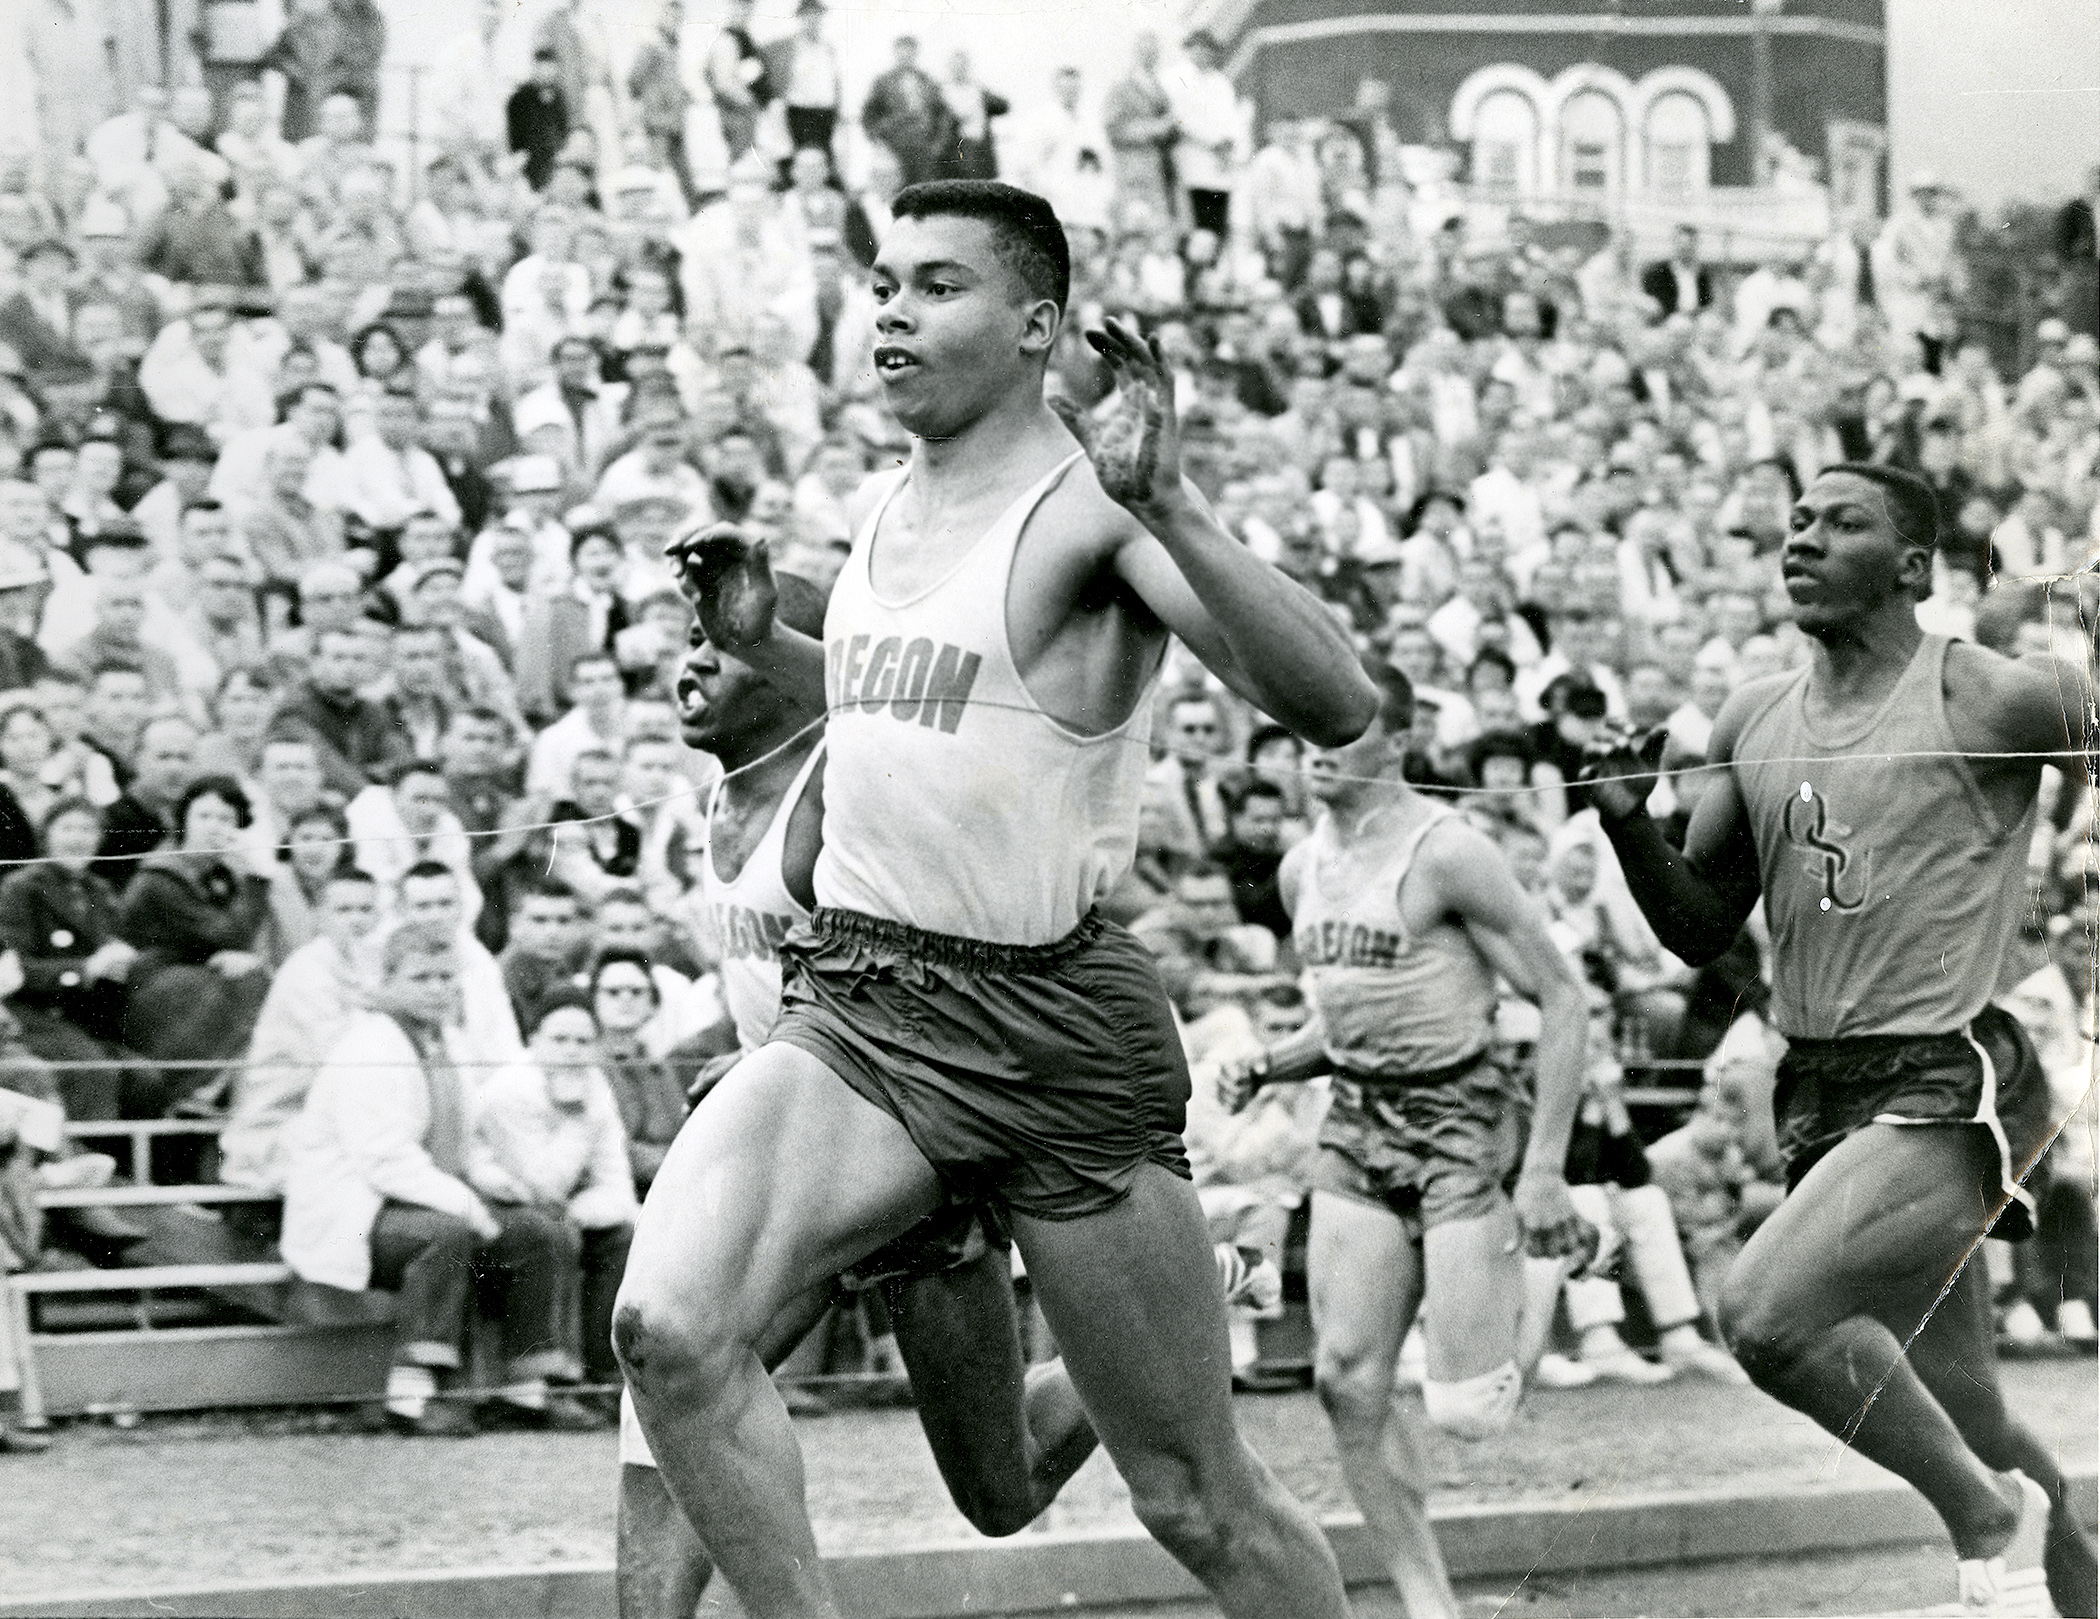 Harry Jerome crosses the finish line at a dual meet with the University of Oregon and Oregon State University, circa 1961. Mr. Jerome competed in the United States for four years and had multiple American Athletic Union and National Collegiate Athletic Association wins while a scholarship student at the University of Oregon. Photo credit: Harry and Valerie Jerome fonds, Simon Fraser University Special Collections and Rare Books Division.